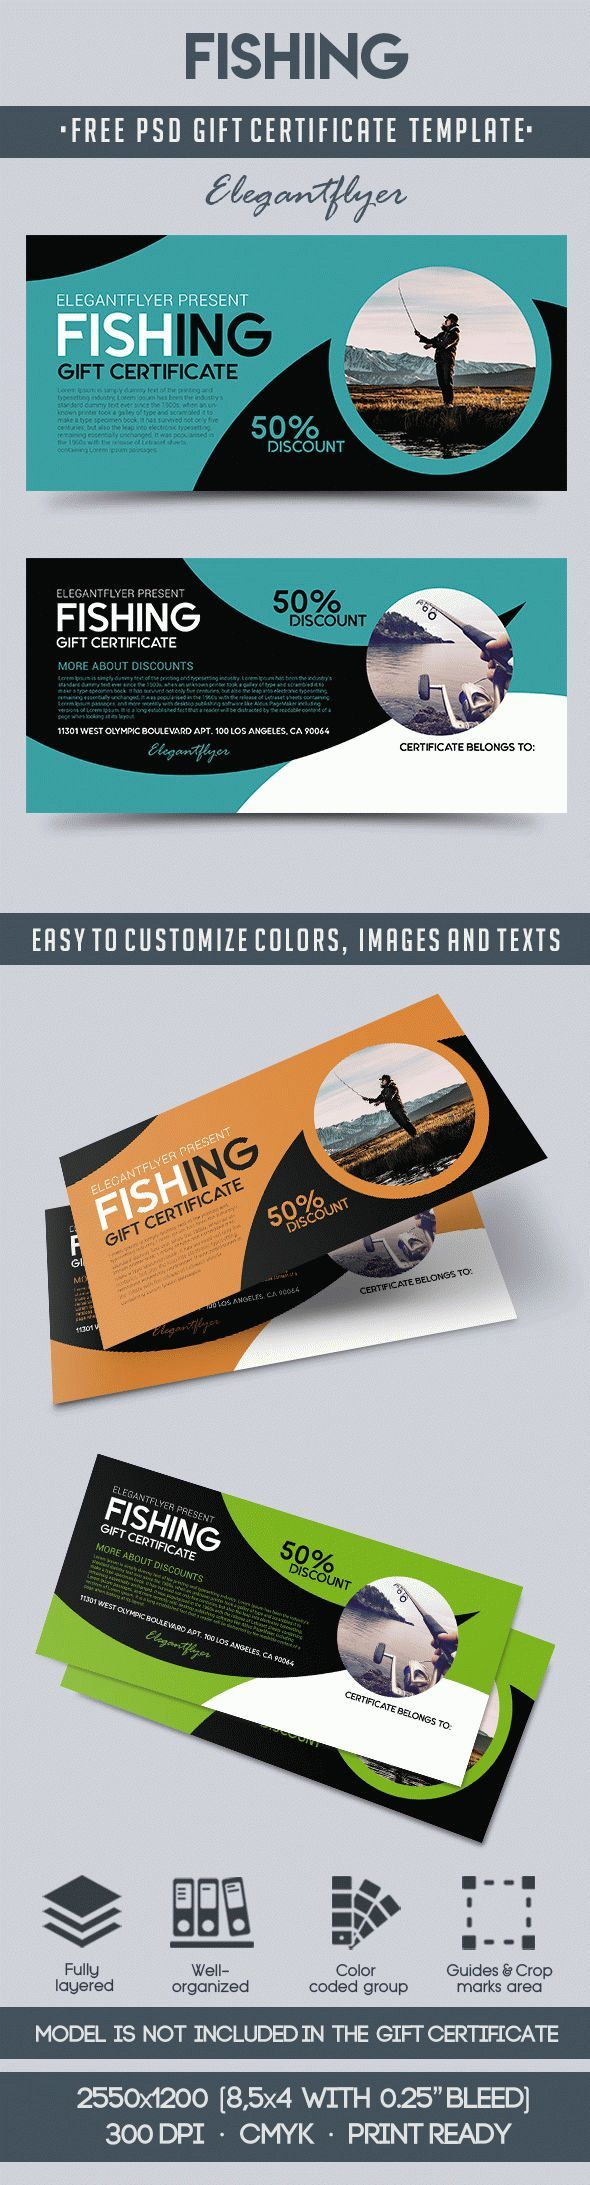 The 66 best free gift certificate templates images on pinterest fishing free gift certificate psd template yelopaper Gallery